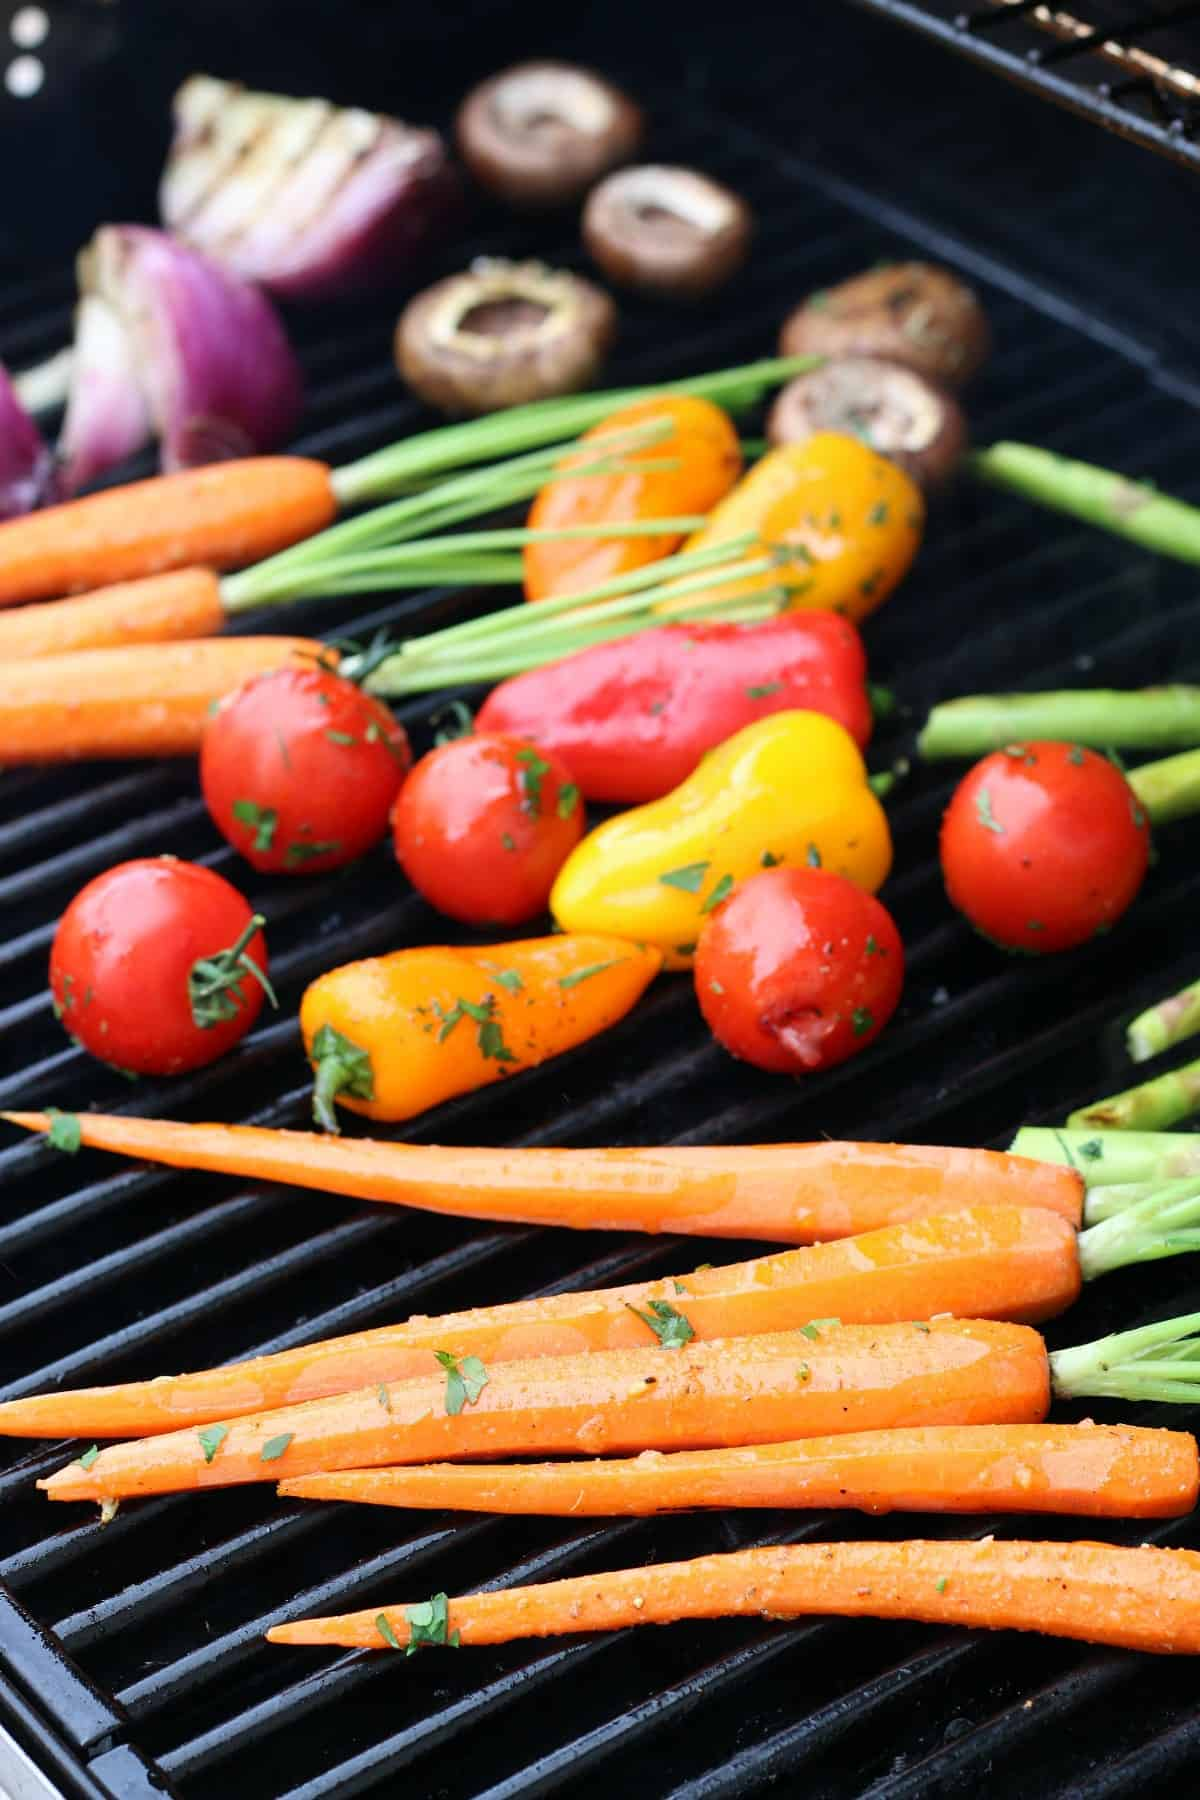 Whole and cut fresh vegetables are brushed with a grilling mix and are laying across the top of a grill.